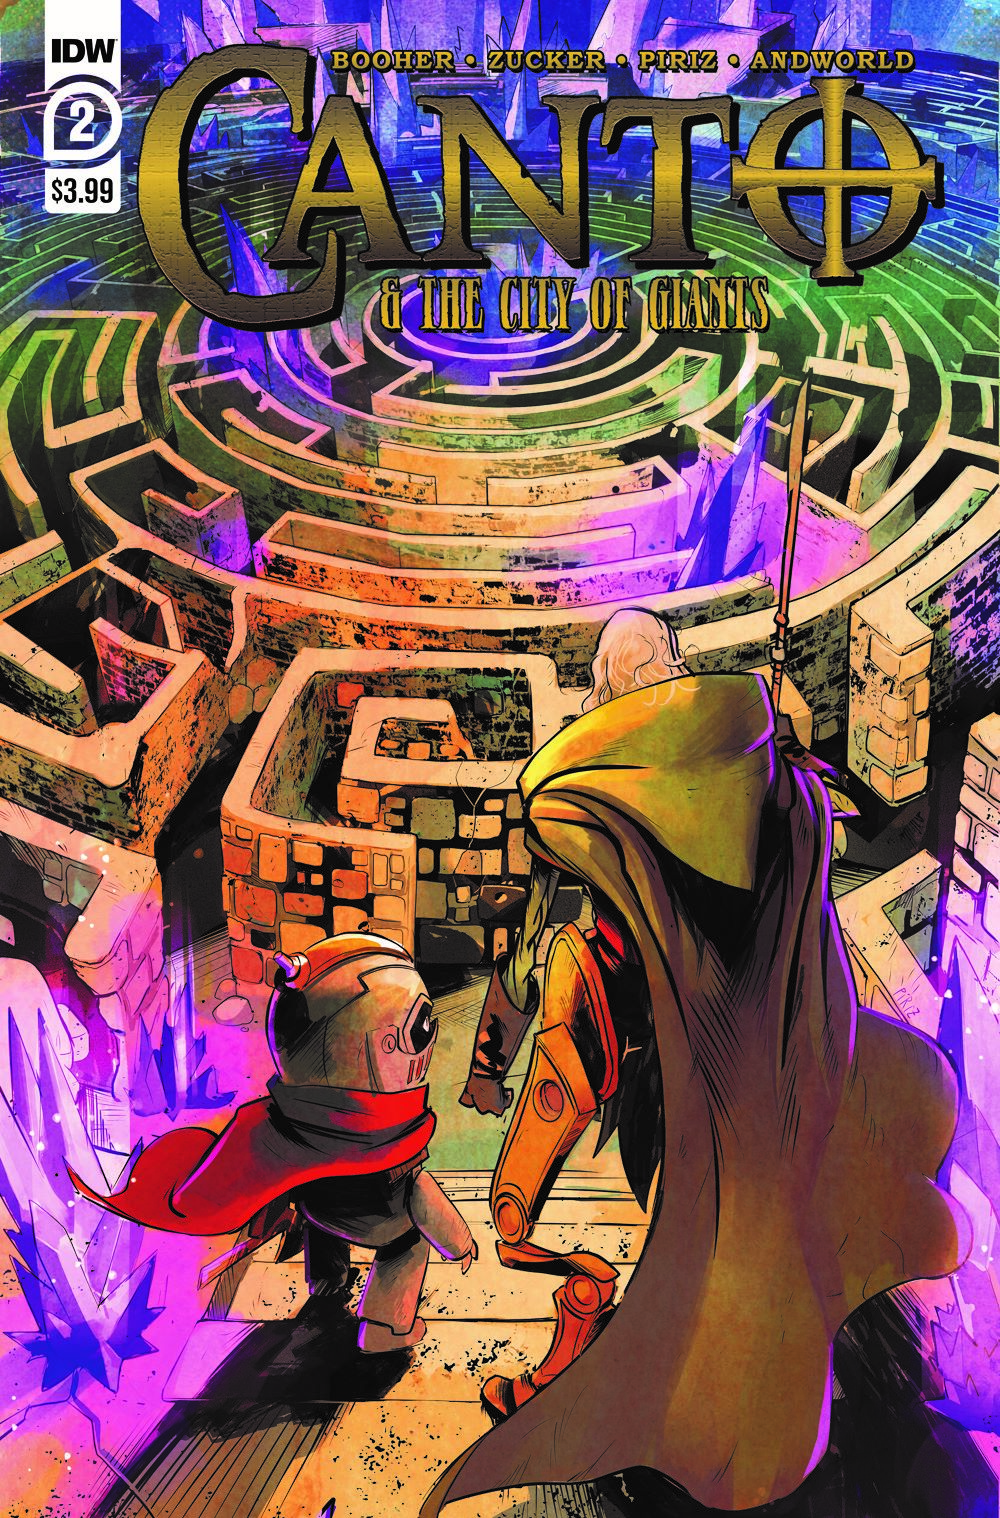 Canto-CoG02_cvrA ComicList Previews: CANTO AND THE CITY OF GIANTS #2 (OF 3)